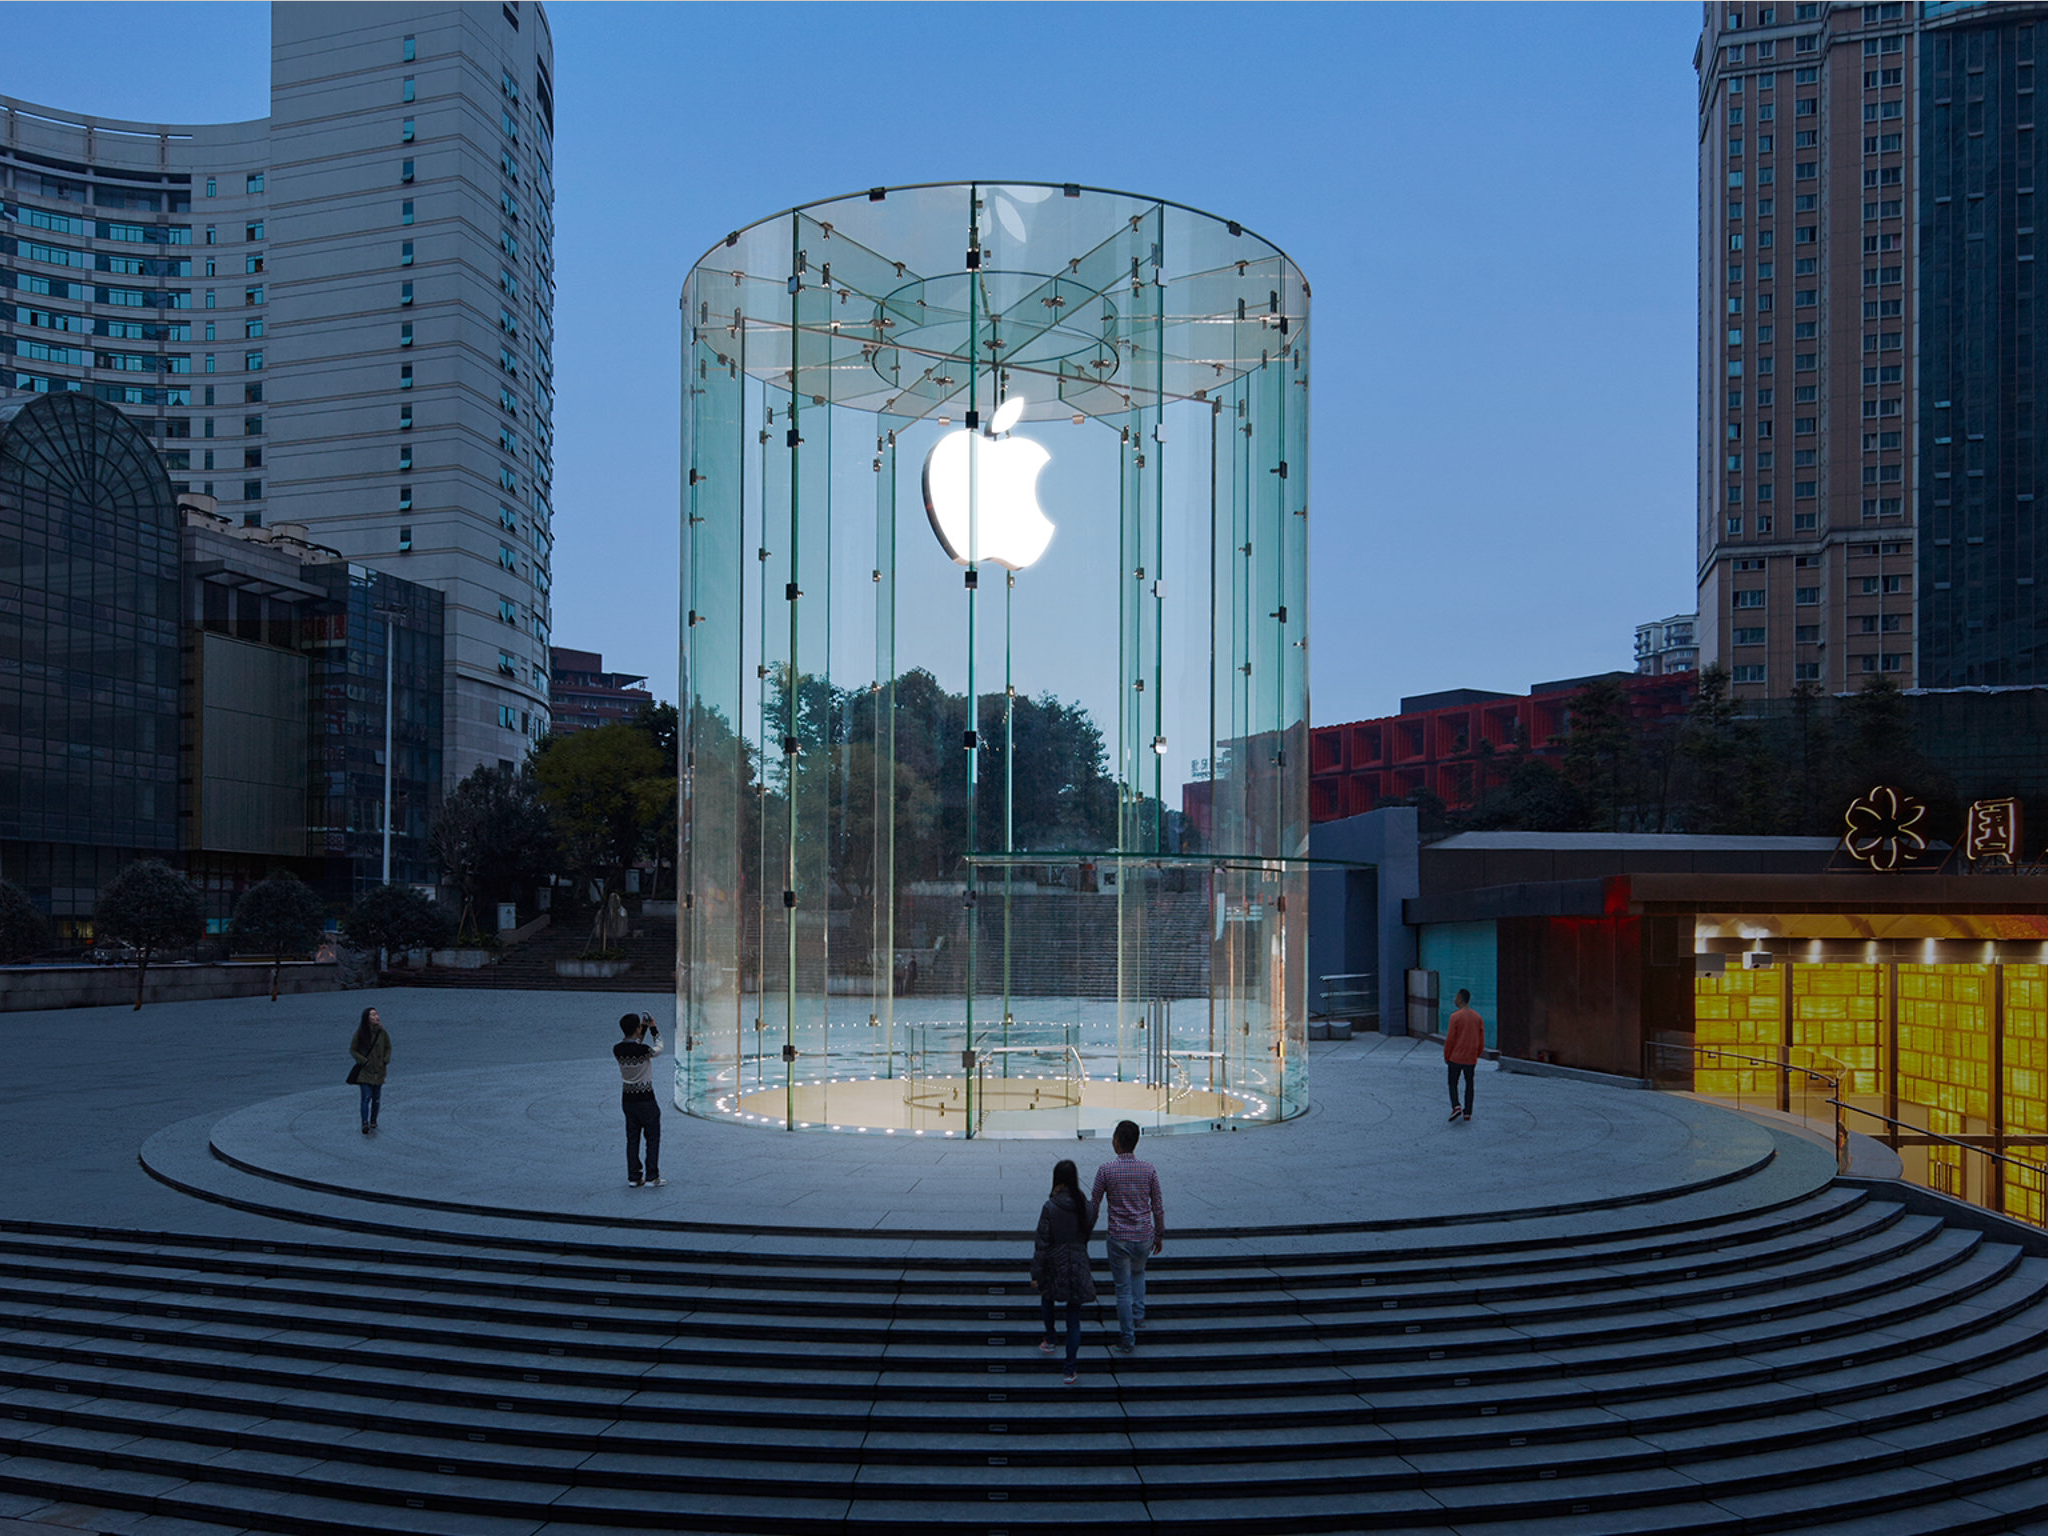 See the making of the stunning mural celebrating Apple's newly opened store in China